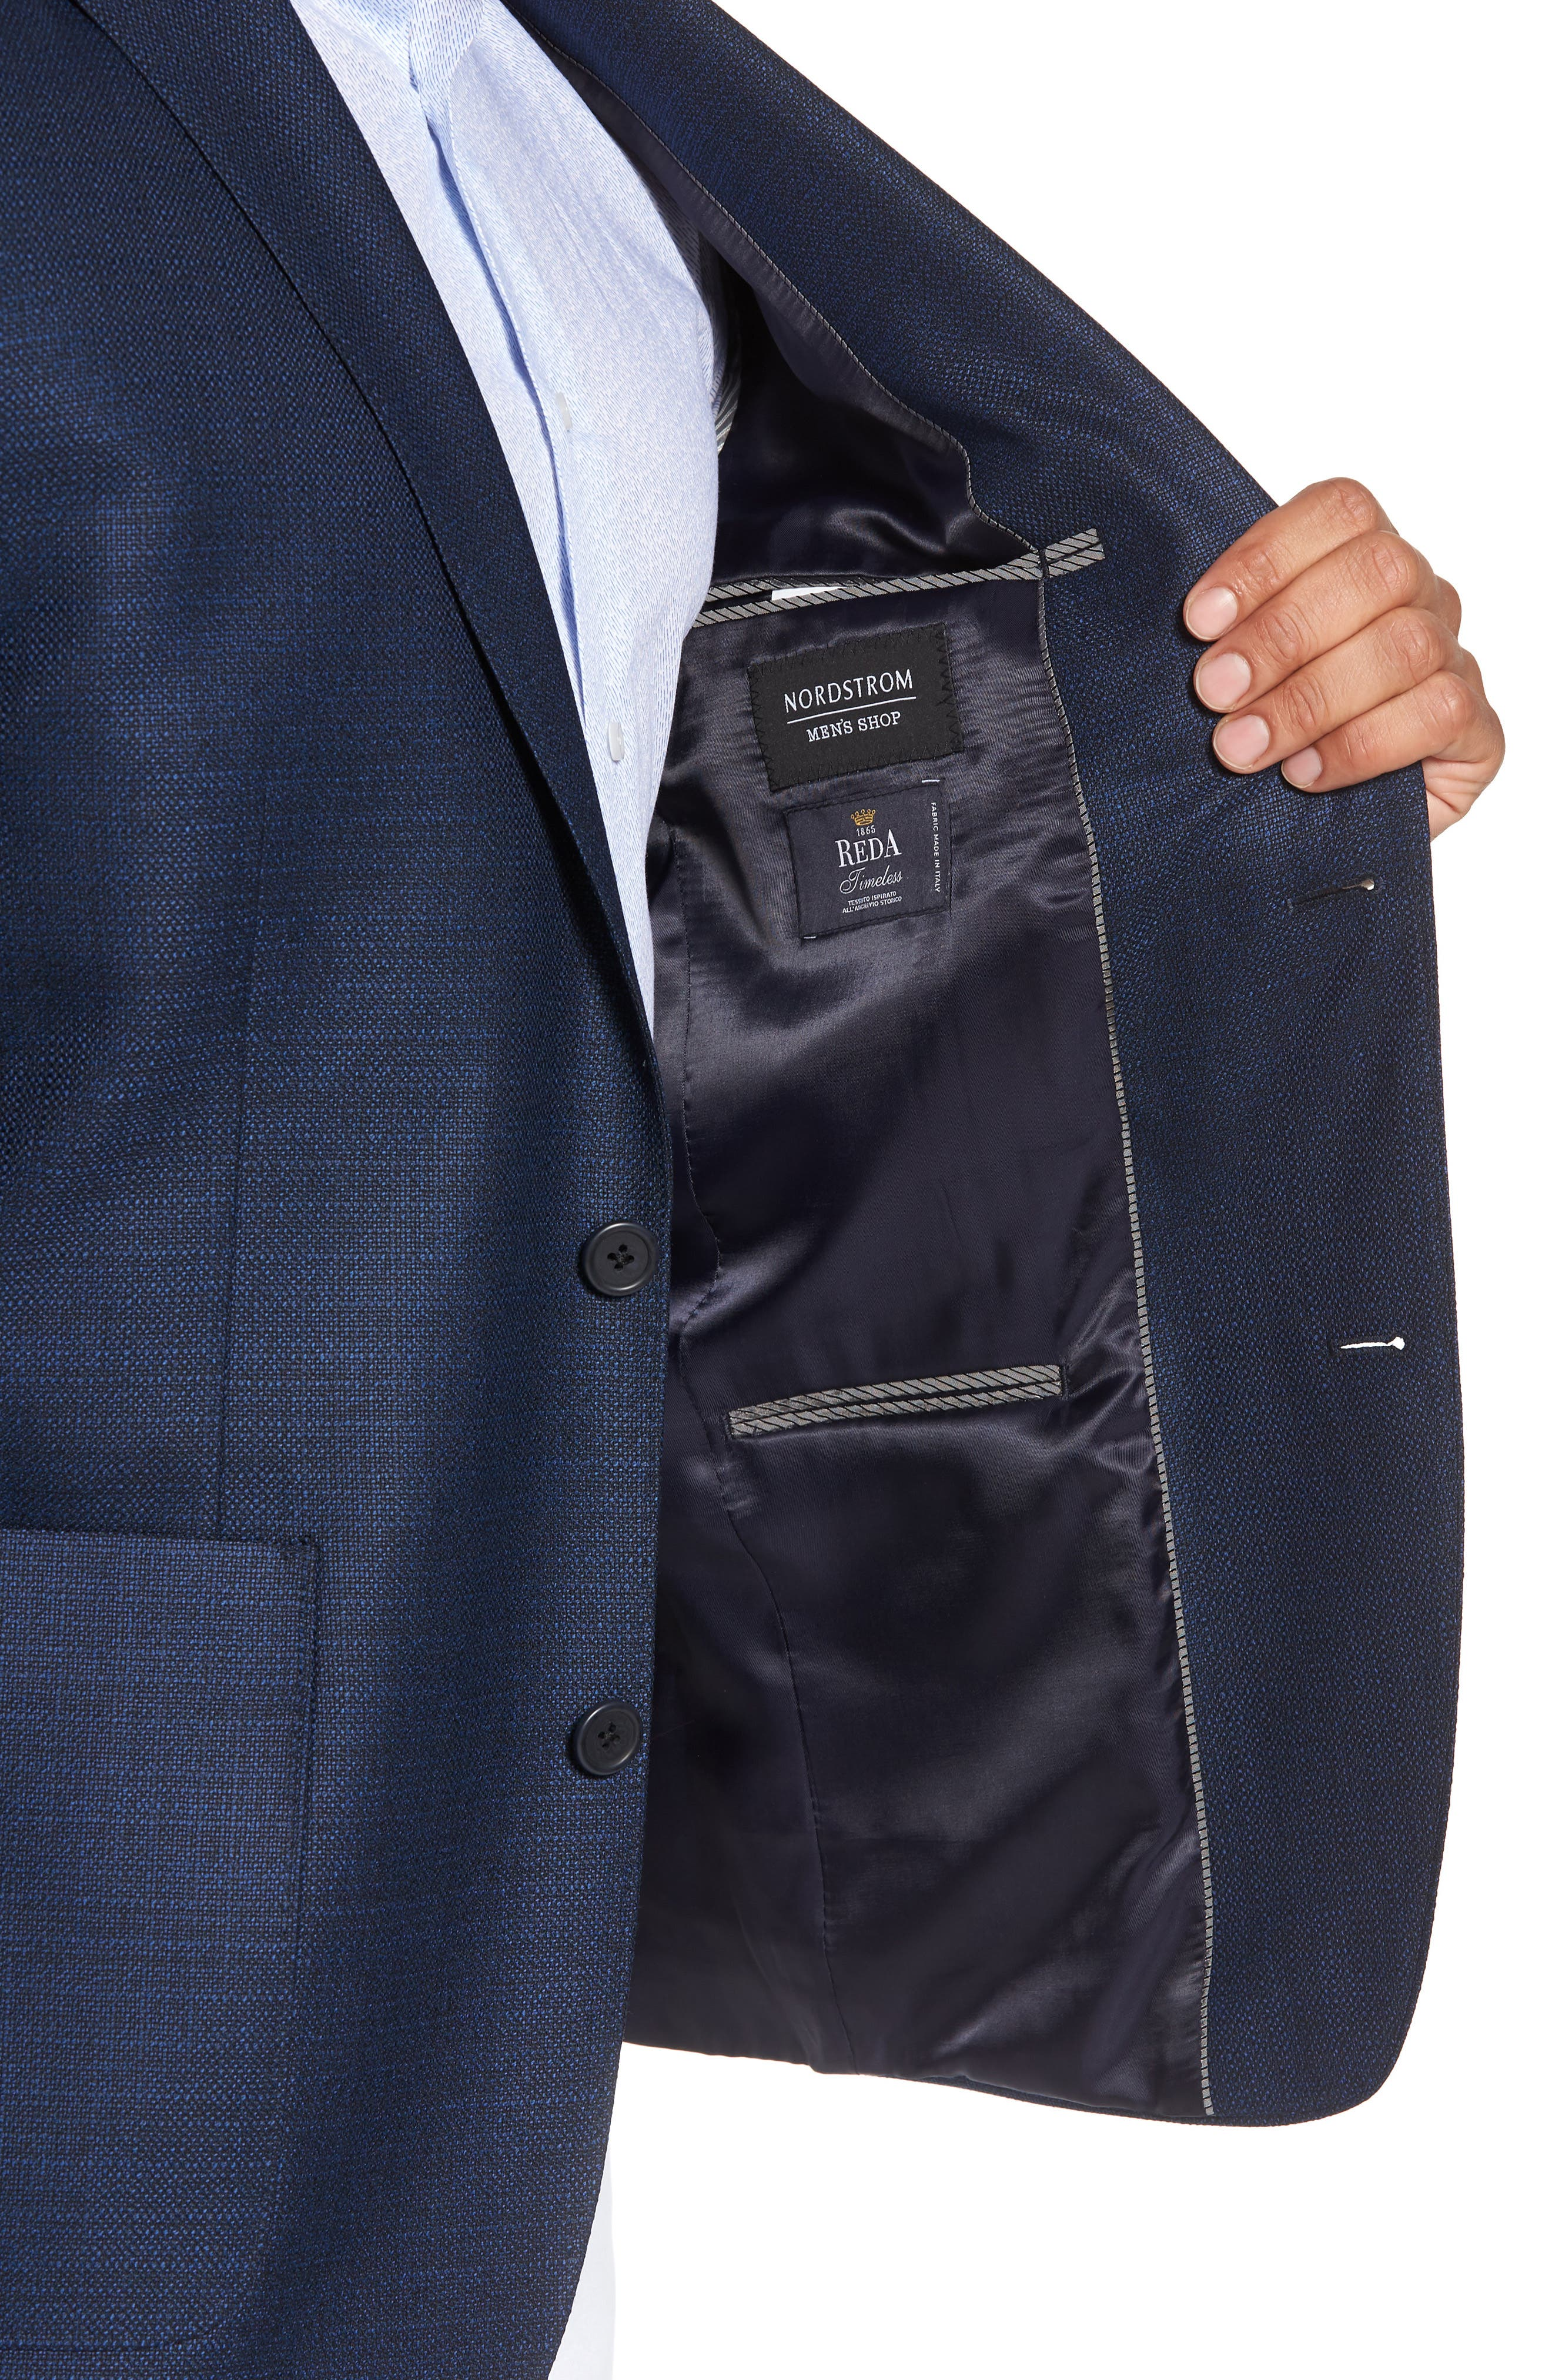 Trim Fit Wool Blazer,                             Alternate thumbnail 4, color,                             Navy